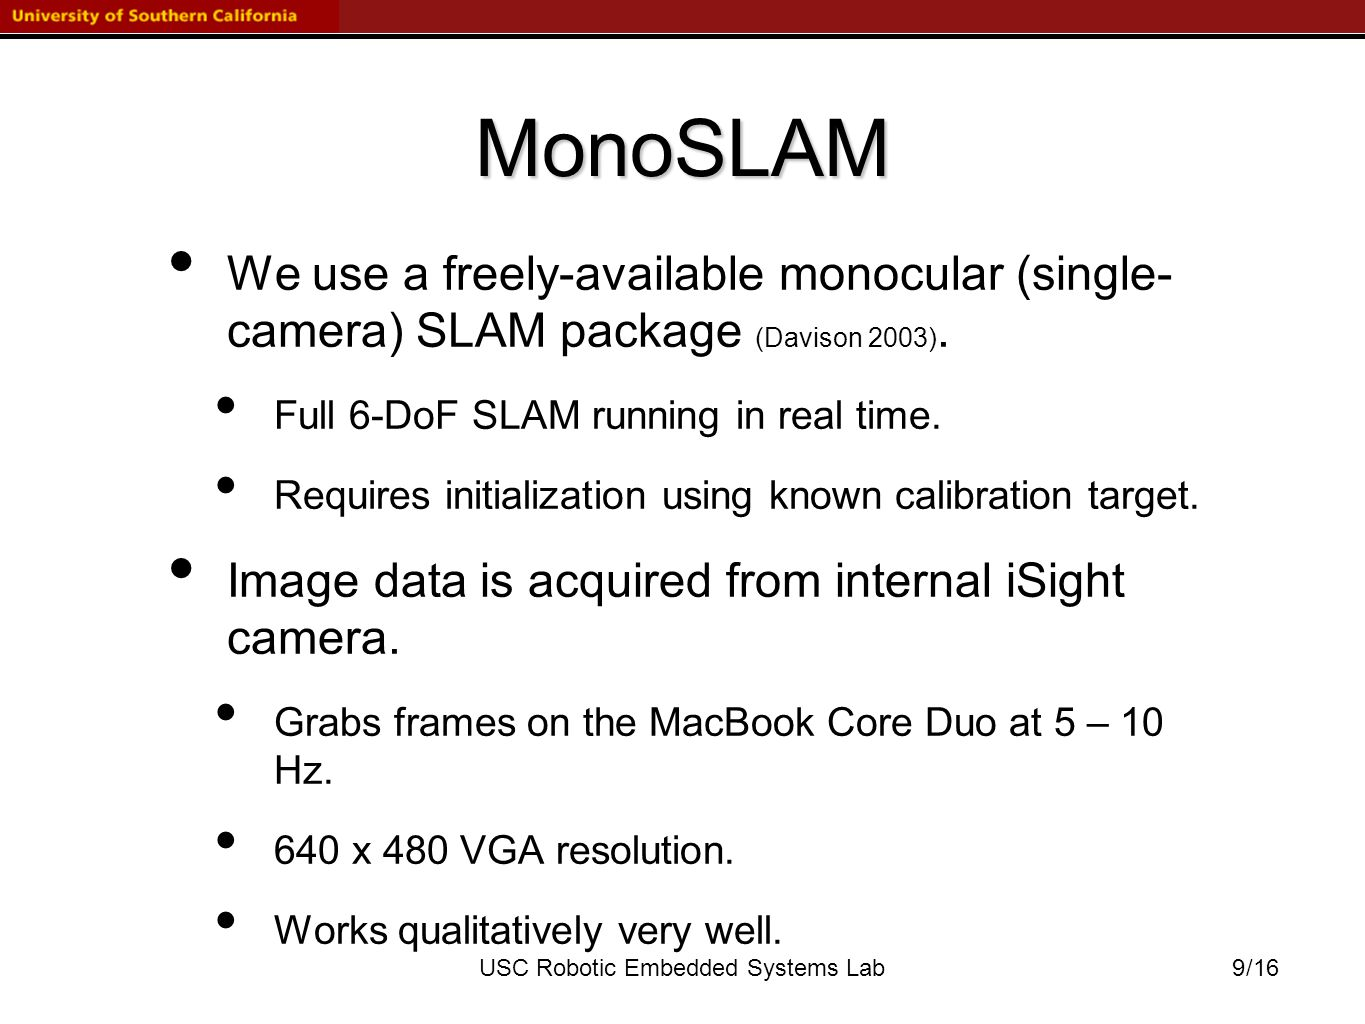 /16USC Robotic Embedded Systems Lab MonoSLAM We use a freely-available monocular (single- camera) SLAM package (Davison 2003).